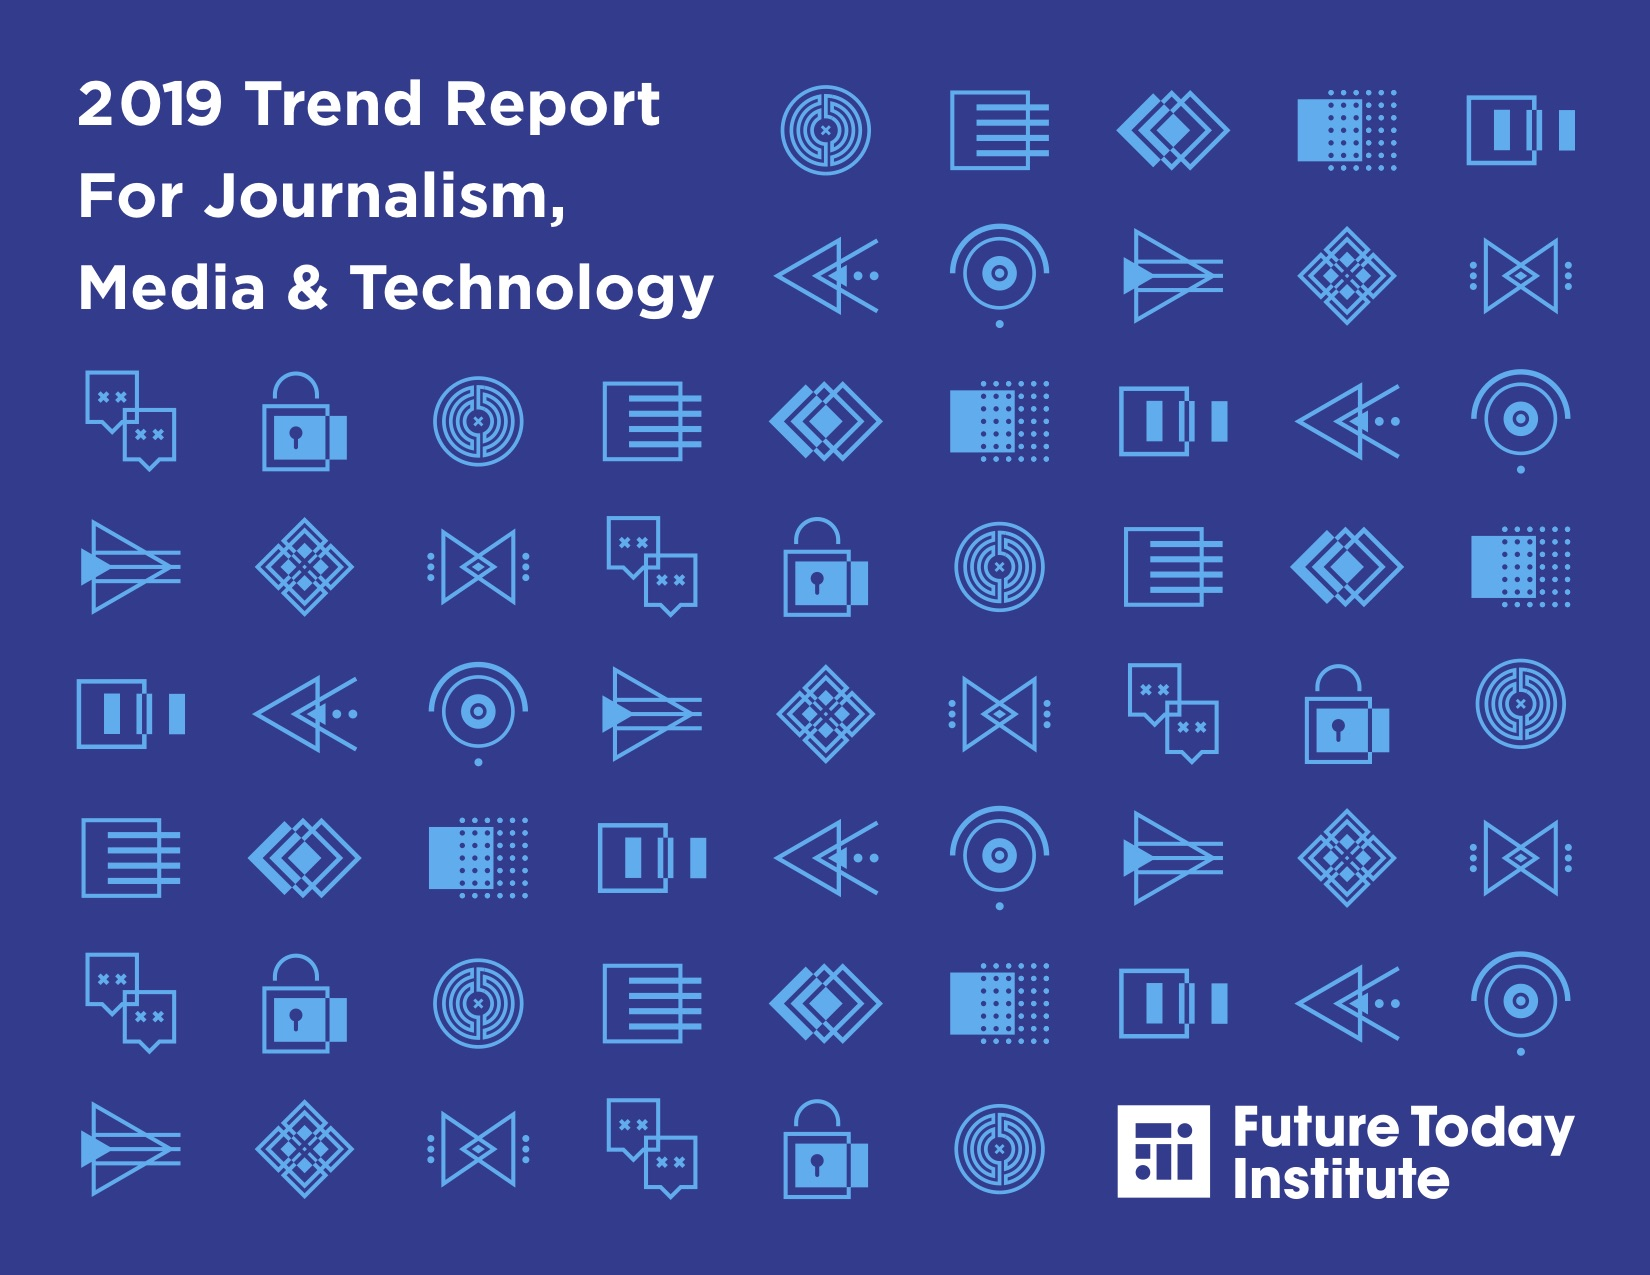 2019 Trend Report For Journalism, Media & Technology